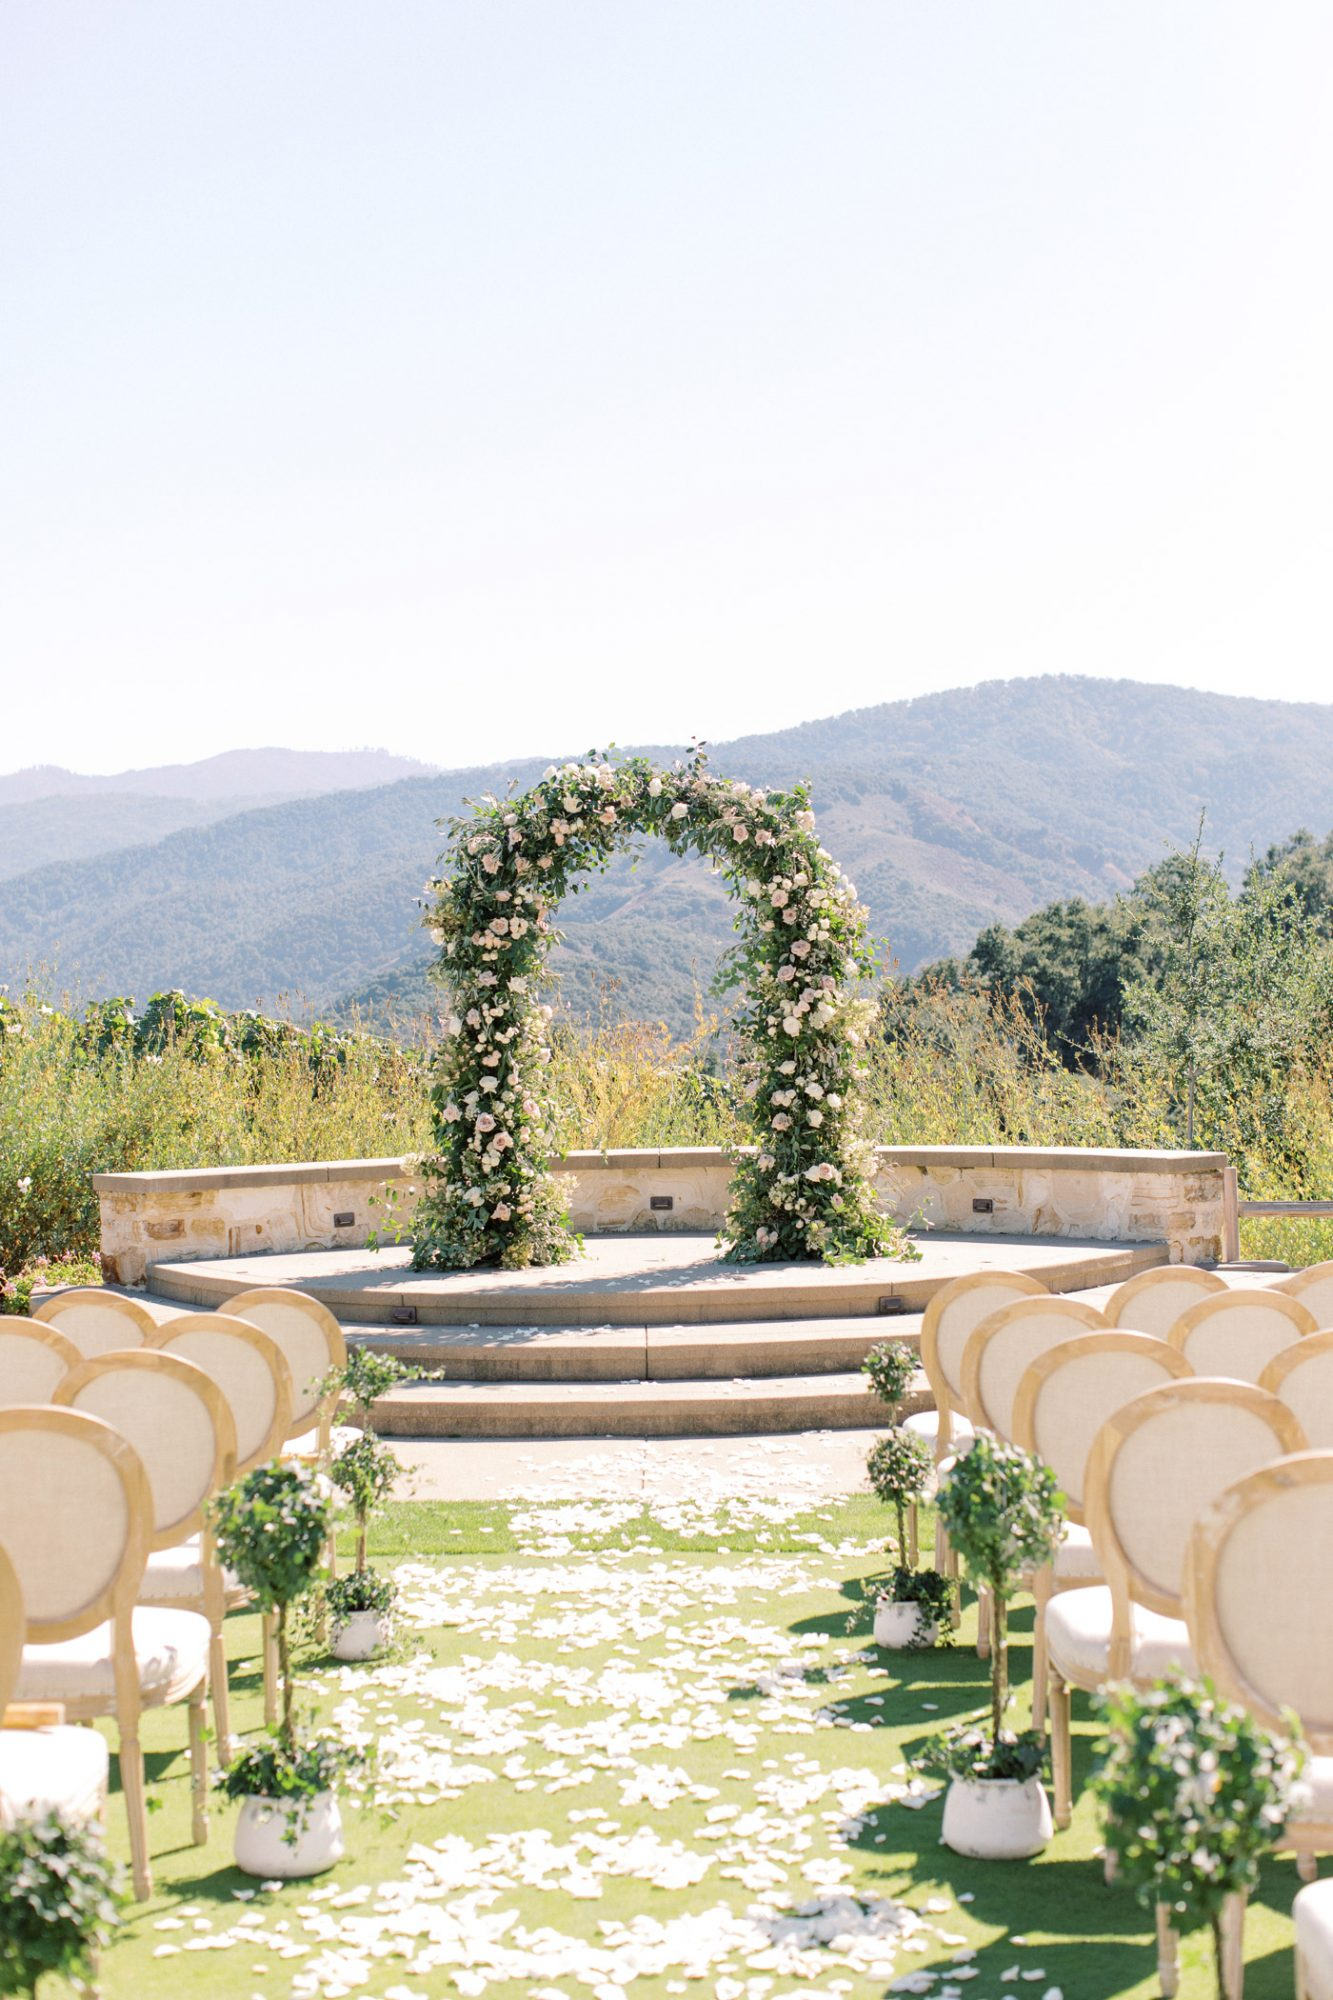 floral arch flower petals in aisle outdoor wedding space